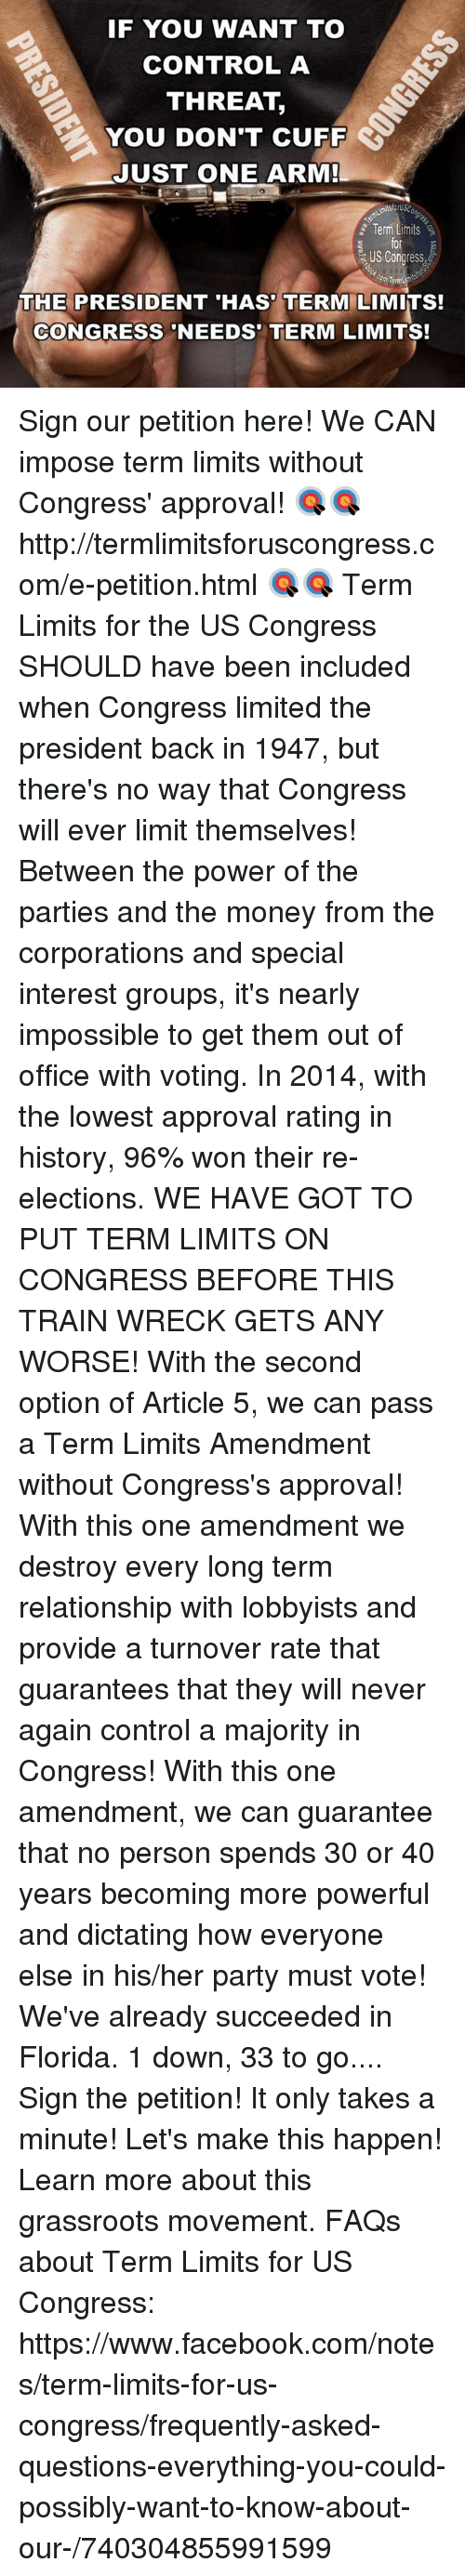 Approvation: IF YOU WANT TO  CONTROL A  THREAT  YOU DON'T CUFF  JUST ONE ARM!  Term  Limits  US Congress  com Termin  THE PRESIDENT HAS TERM LIMITS!  CONGRESS NEEDS TERM LIMITS! Sign our petition here! We CAN impose term limits without Congress' approval! 🎯🎯http://termlimitsforuscongress.com/e-petition.html 🎯🎯  Term Limits for the US Congress SHOULD have been included when Congress limited the president back in 1947, but there's no way that Congress will ever limit themselves! Between the power of the parties and the money from the corporations and special interest groups, it's nearly impossible to get them out of office with voting. In 2014, with the lowest approval rating in history, 96% won their re-elections. WE HAVE GOT TO PUT TERM LIMITS ON CONGRESS BEFORE THIS TRAIN WRECK GETS ANY WORSE!  With the second option of Article 5, we can pass a Term Limits Amendment without Congress's approval! With this one amendment we destroy every long term relationship with lobbyists and provide a turnover rate that guarantees that they will never again control a majority in Congress! With this one amendment, we can guarantee that no person spends 30 or 40 years becoming more powerful and dictating how everyone else in his/her party must vote!  We've already succeeded in Florida. 1 down, 33 to go....  Sign the petition! It only takes a minute! Let's make this happen!  Learn more about this grassroots movement.  FAQs about Term Limits for US Congress: https://www.facebook.com/notes/term-limits-for-us-congress/frequently-asked-questions-everything-you-could-possibly-want-to-know-about-our-/740304855991599